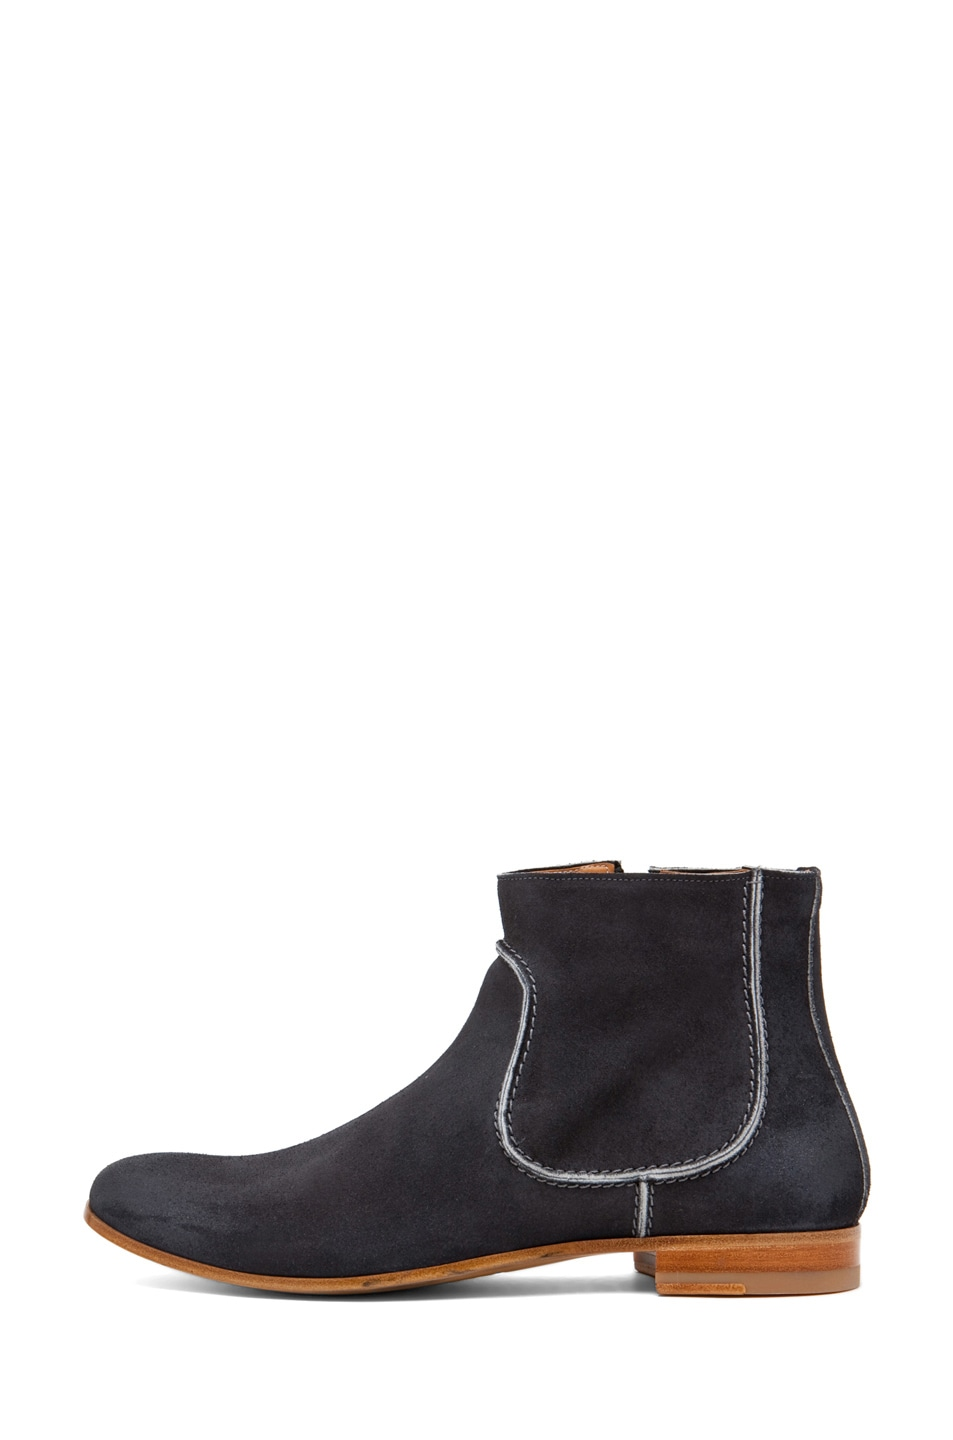 Image 1 of Maison Margiela Contrast Edge Boot in Black